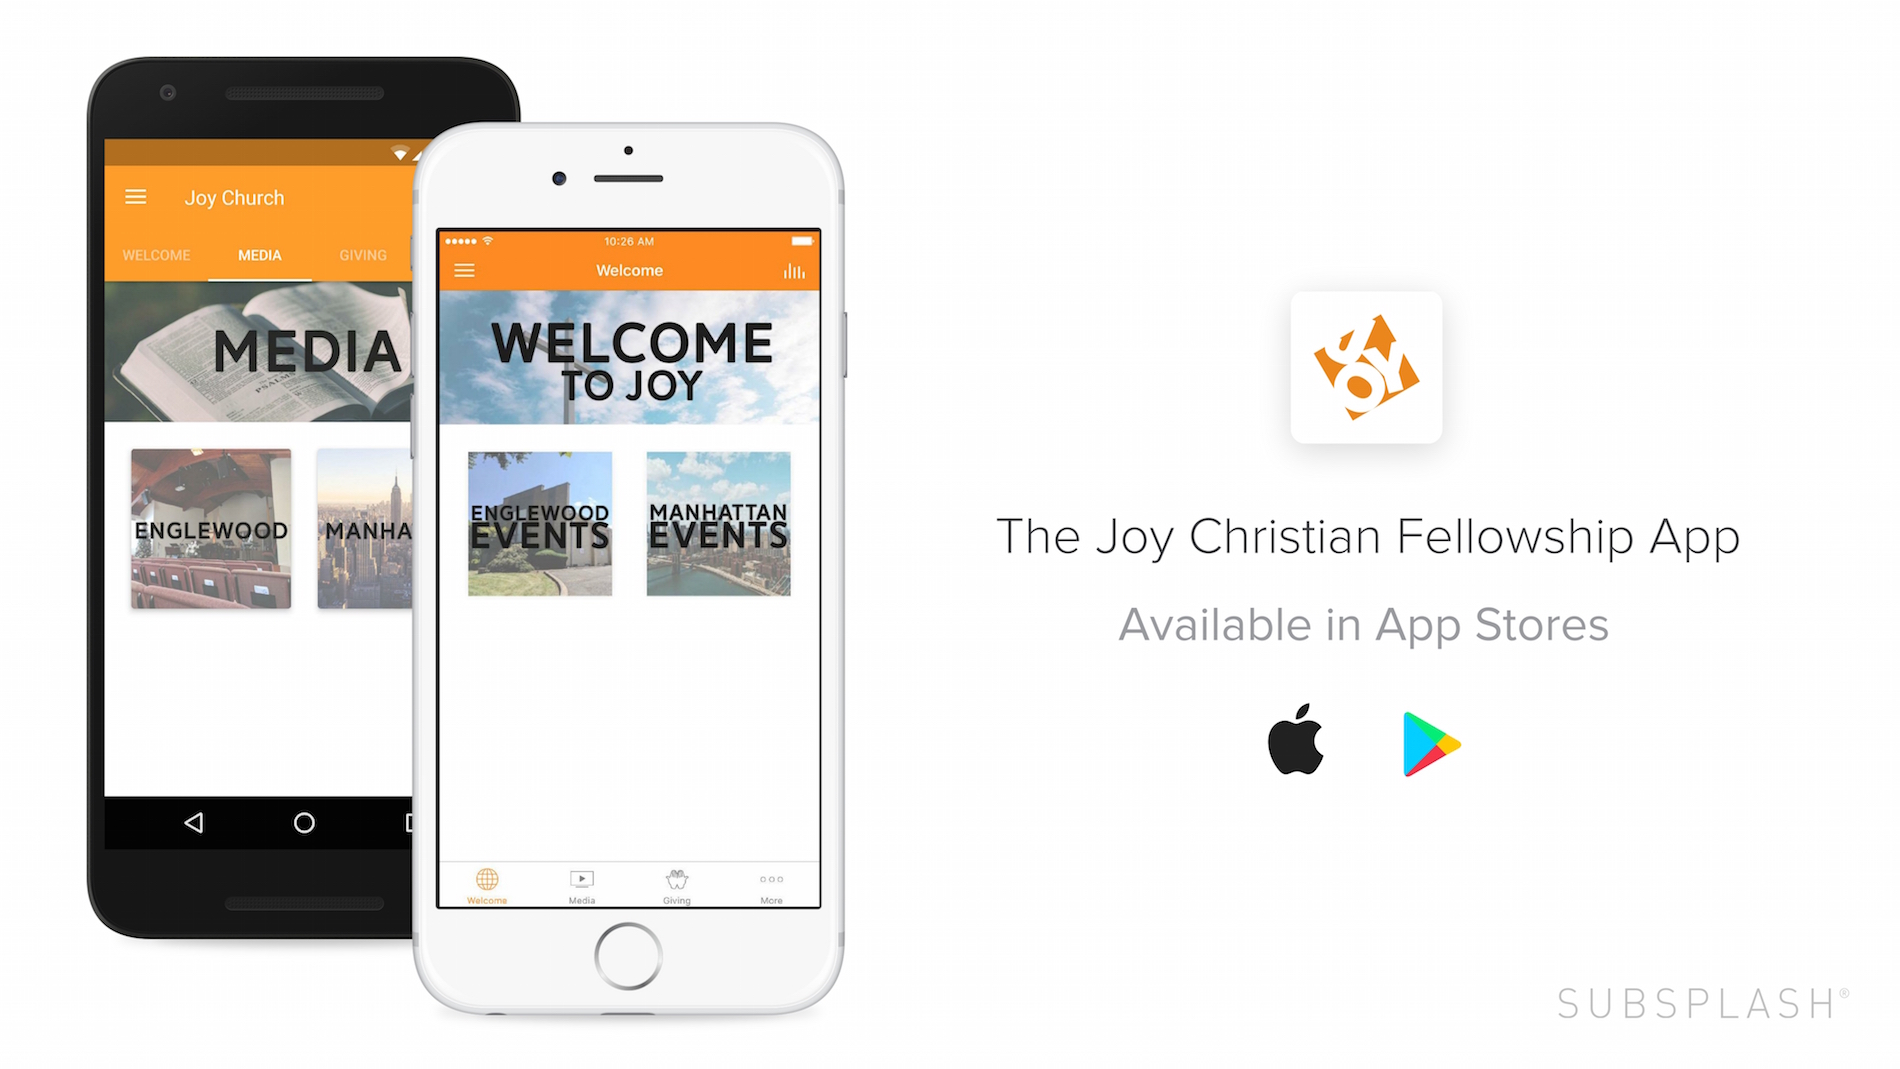 Joy Church App Subsplash Slide copy.jpg